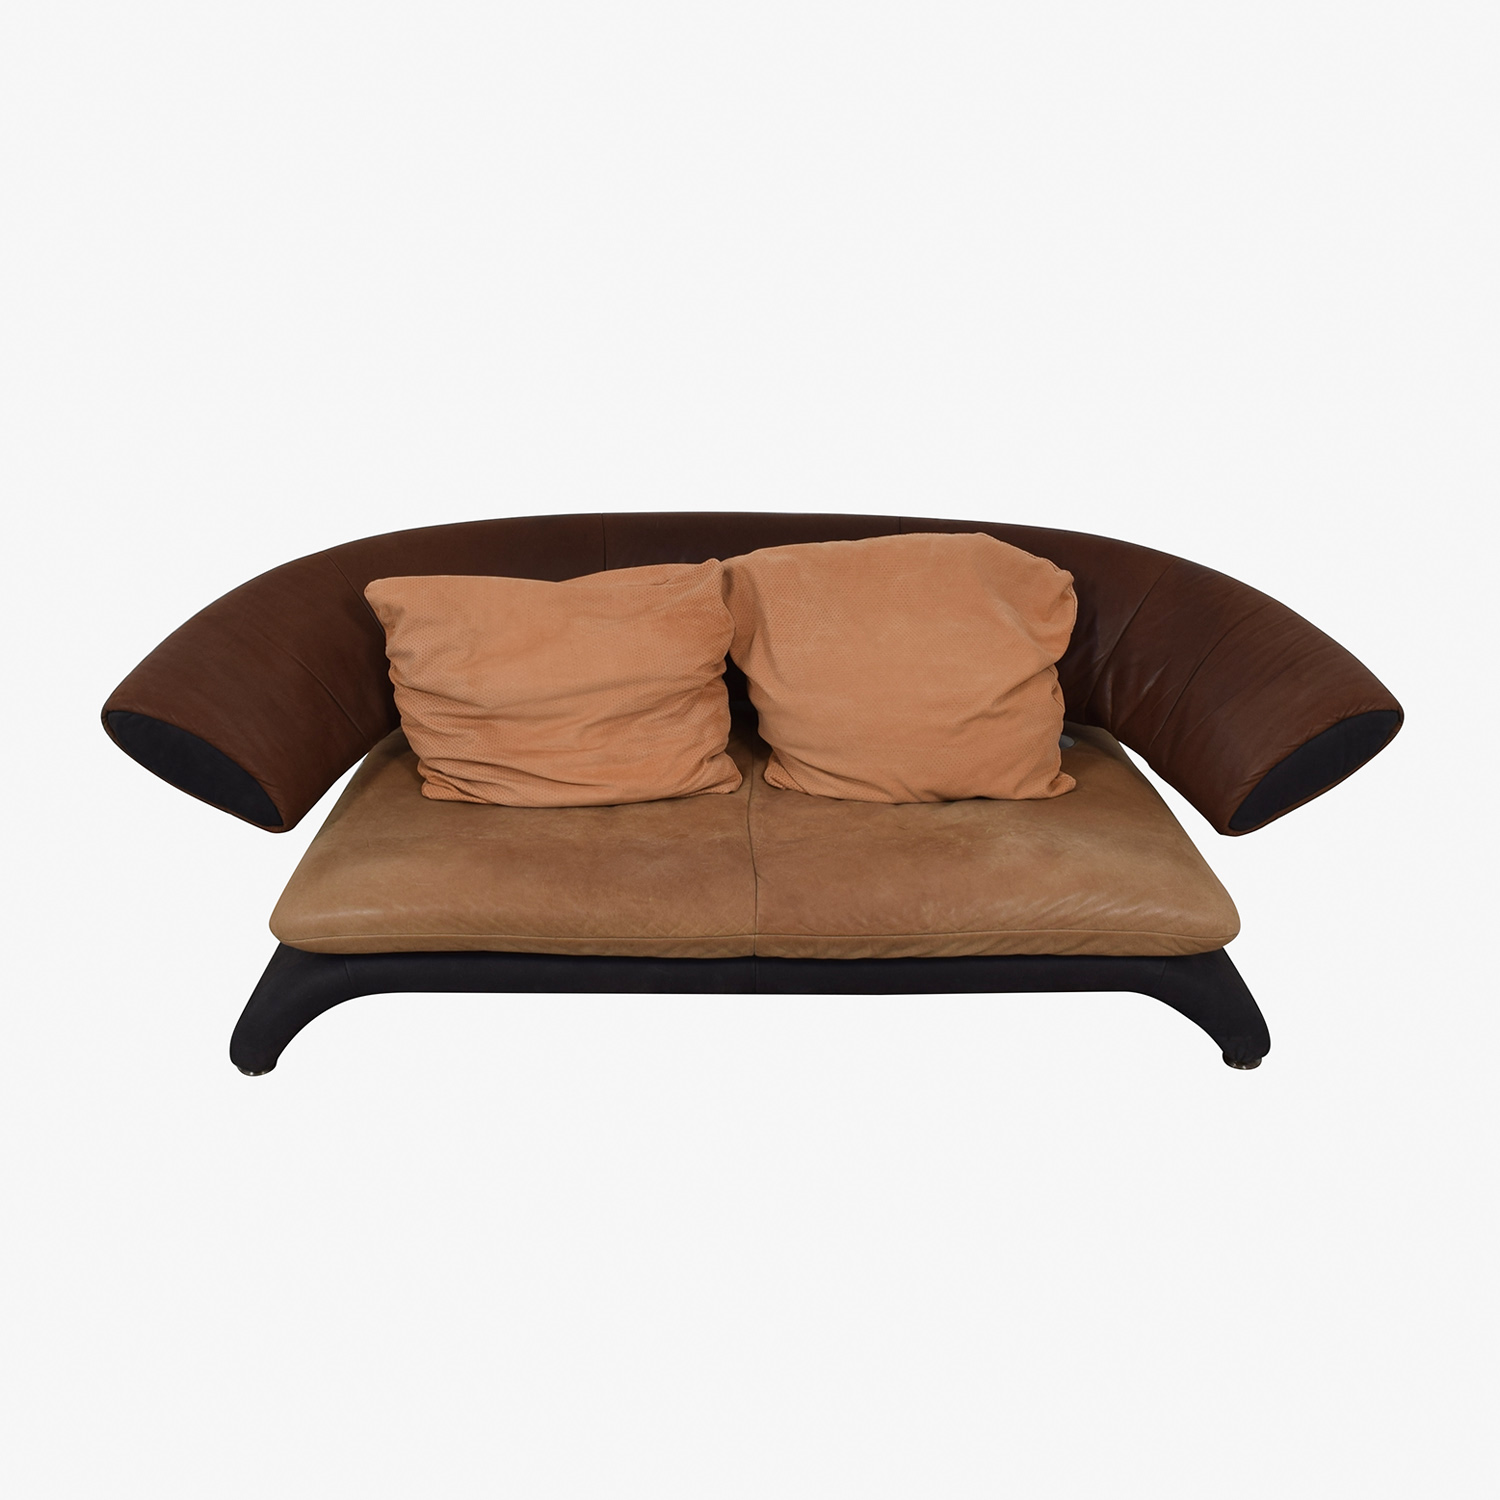 Koinor Koinor Shades of Brown Modern Couch Sofas